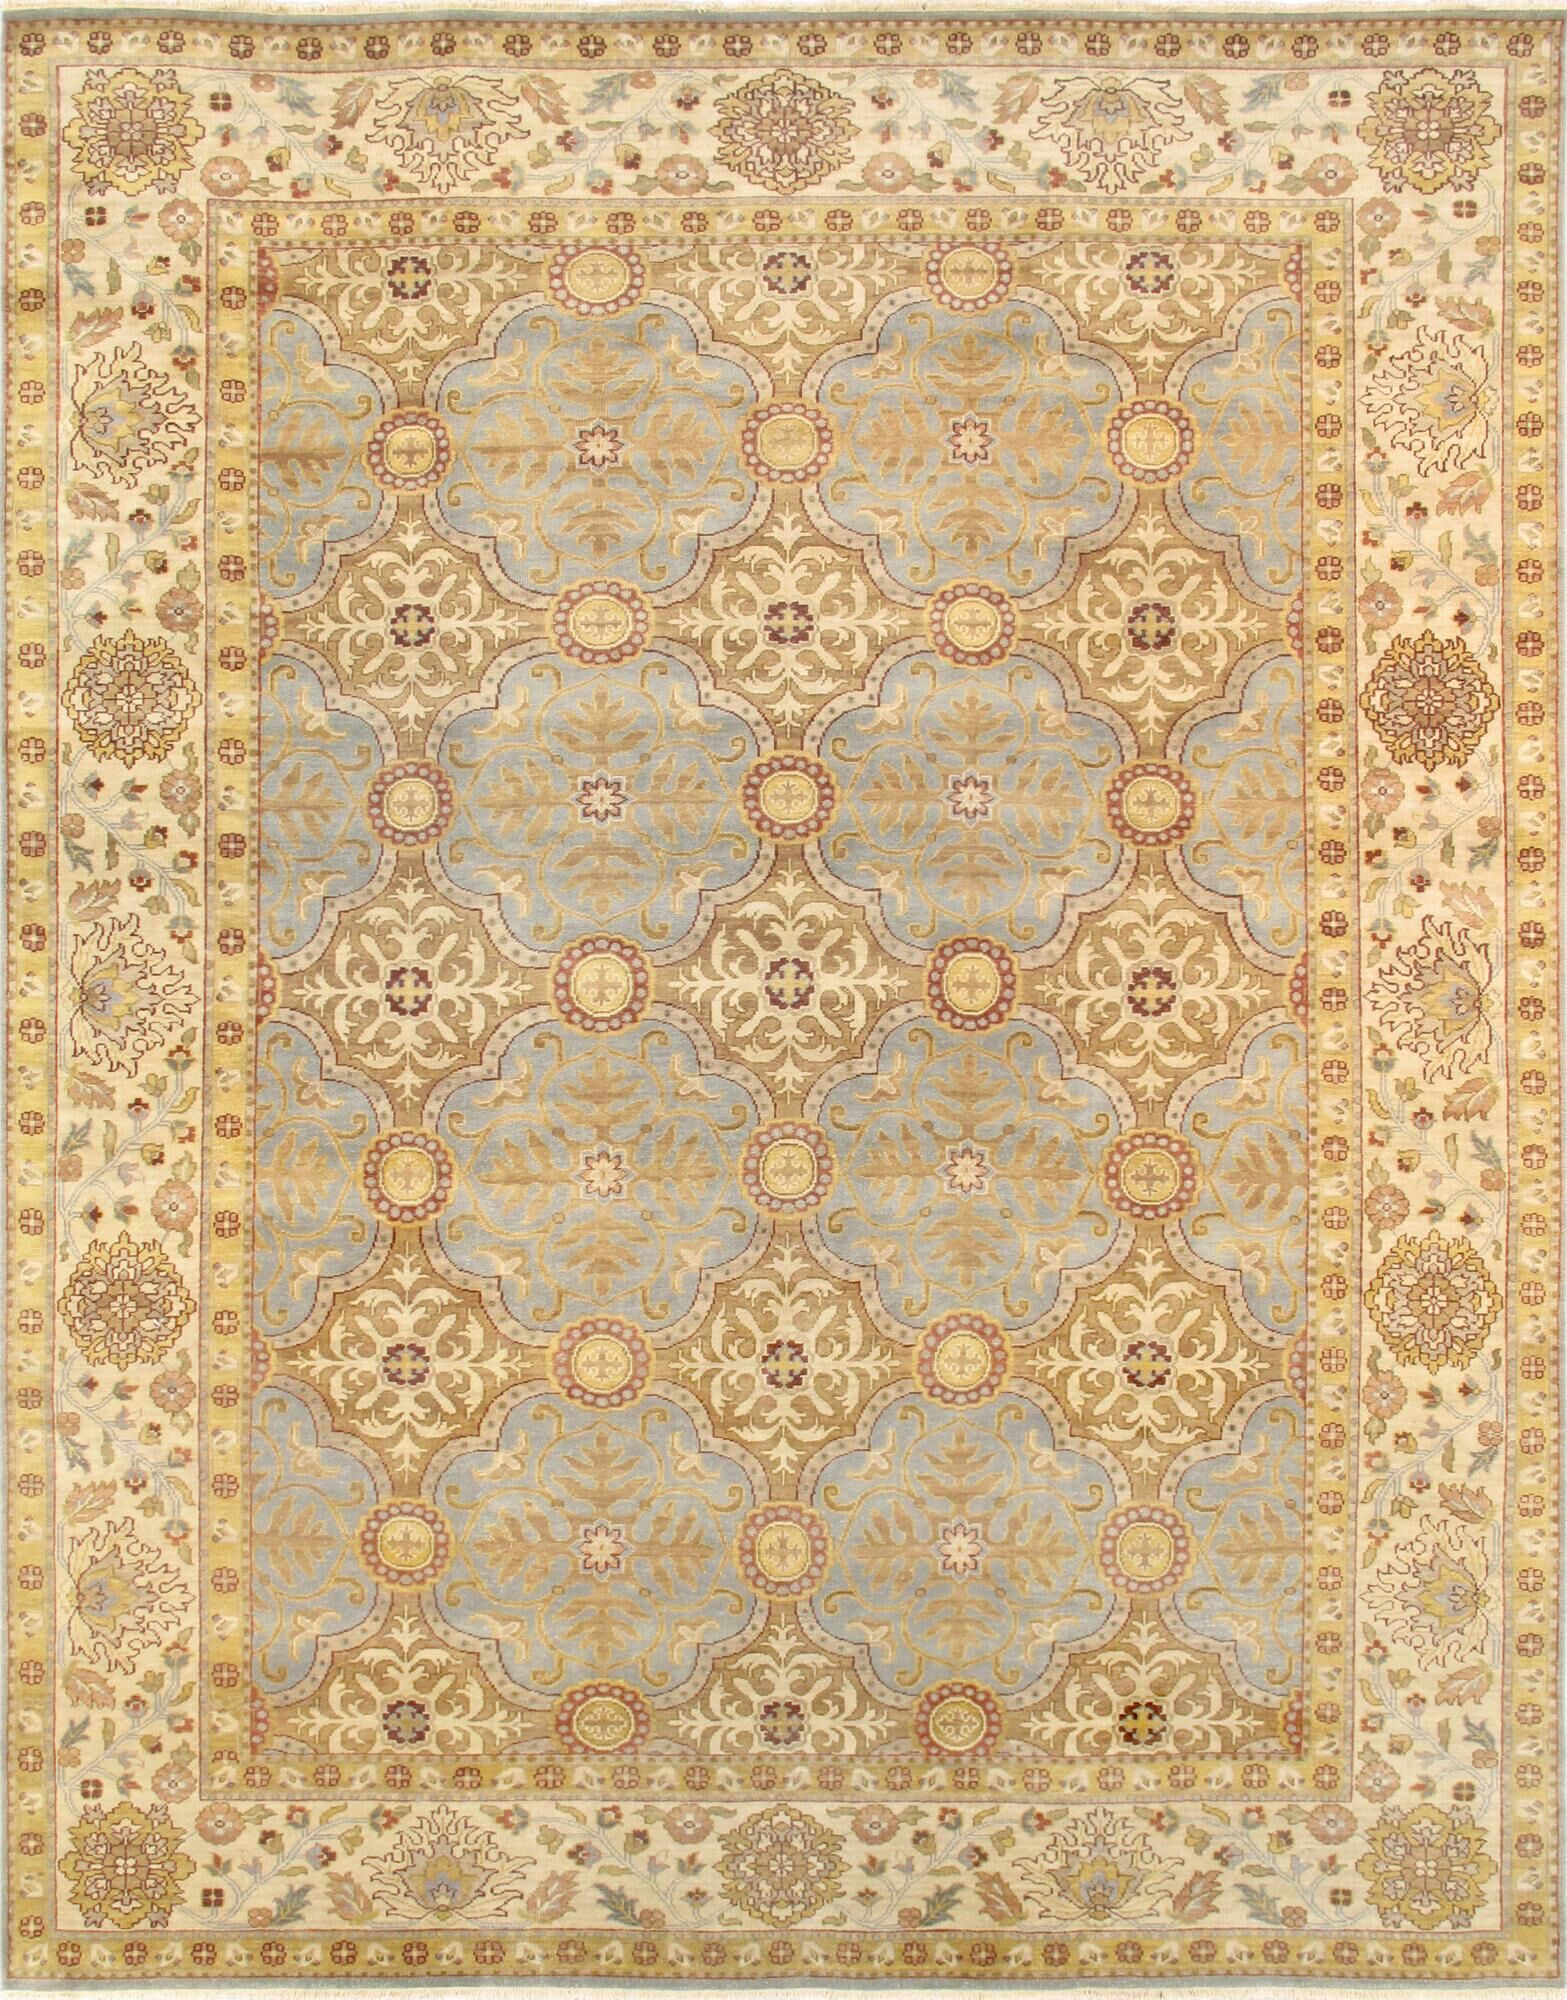 Sultanabad Hand-Knotted Wool Yellow/Gray Area Rug Rug Size: Square 9'10